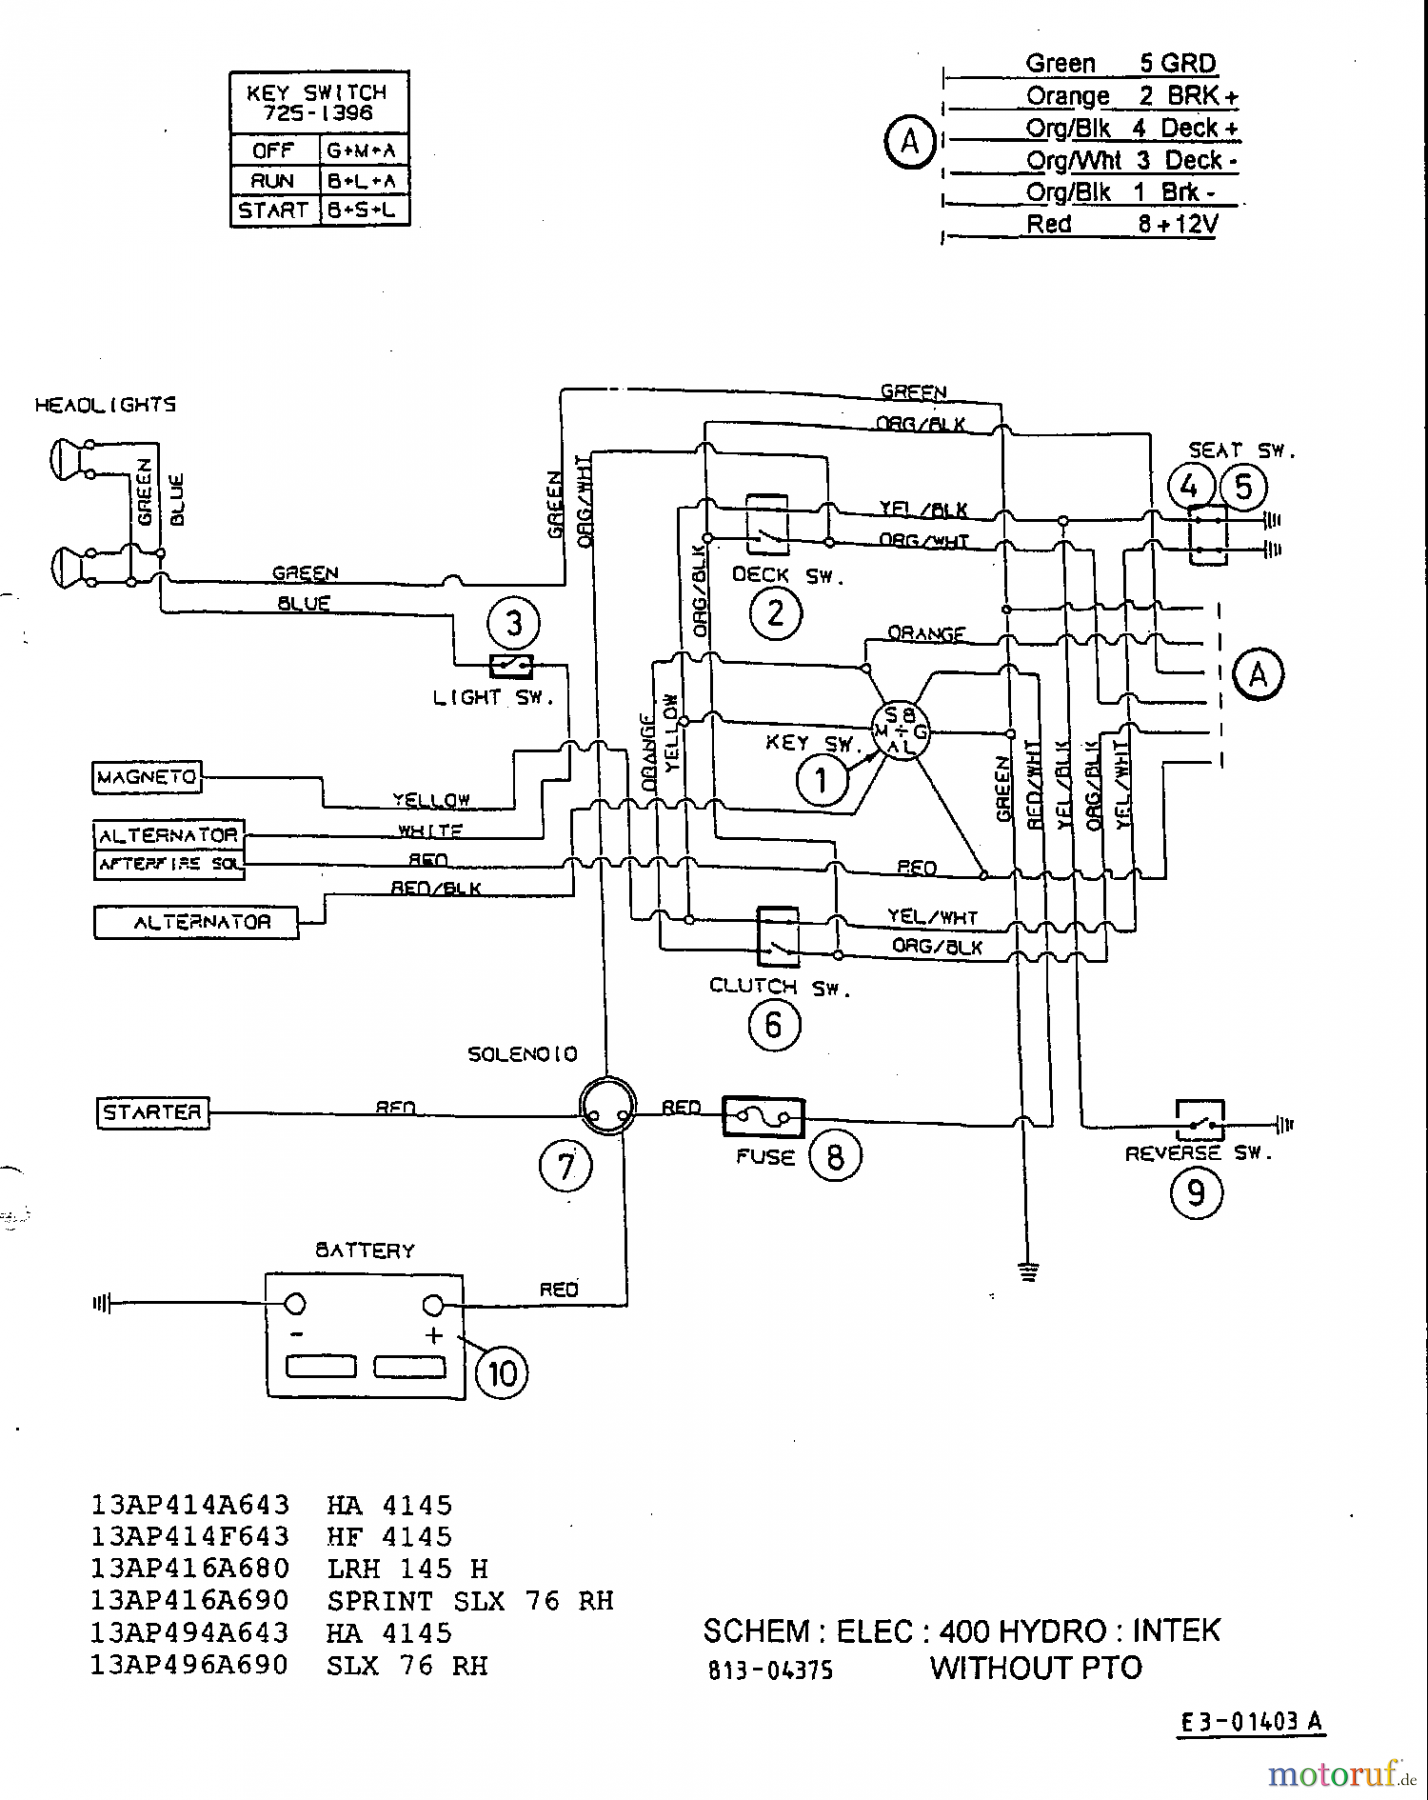 Wiring Diagram Yardman Riding Mower Trusted Walker Mtd With Yard Machine On Ride